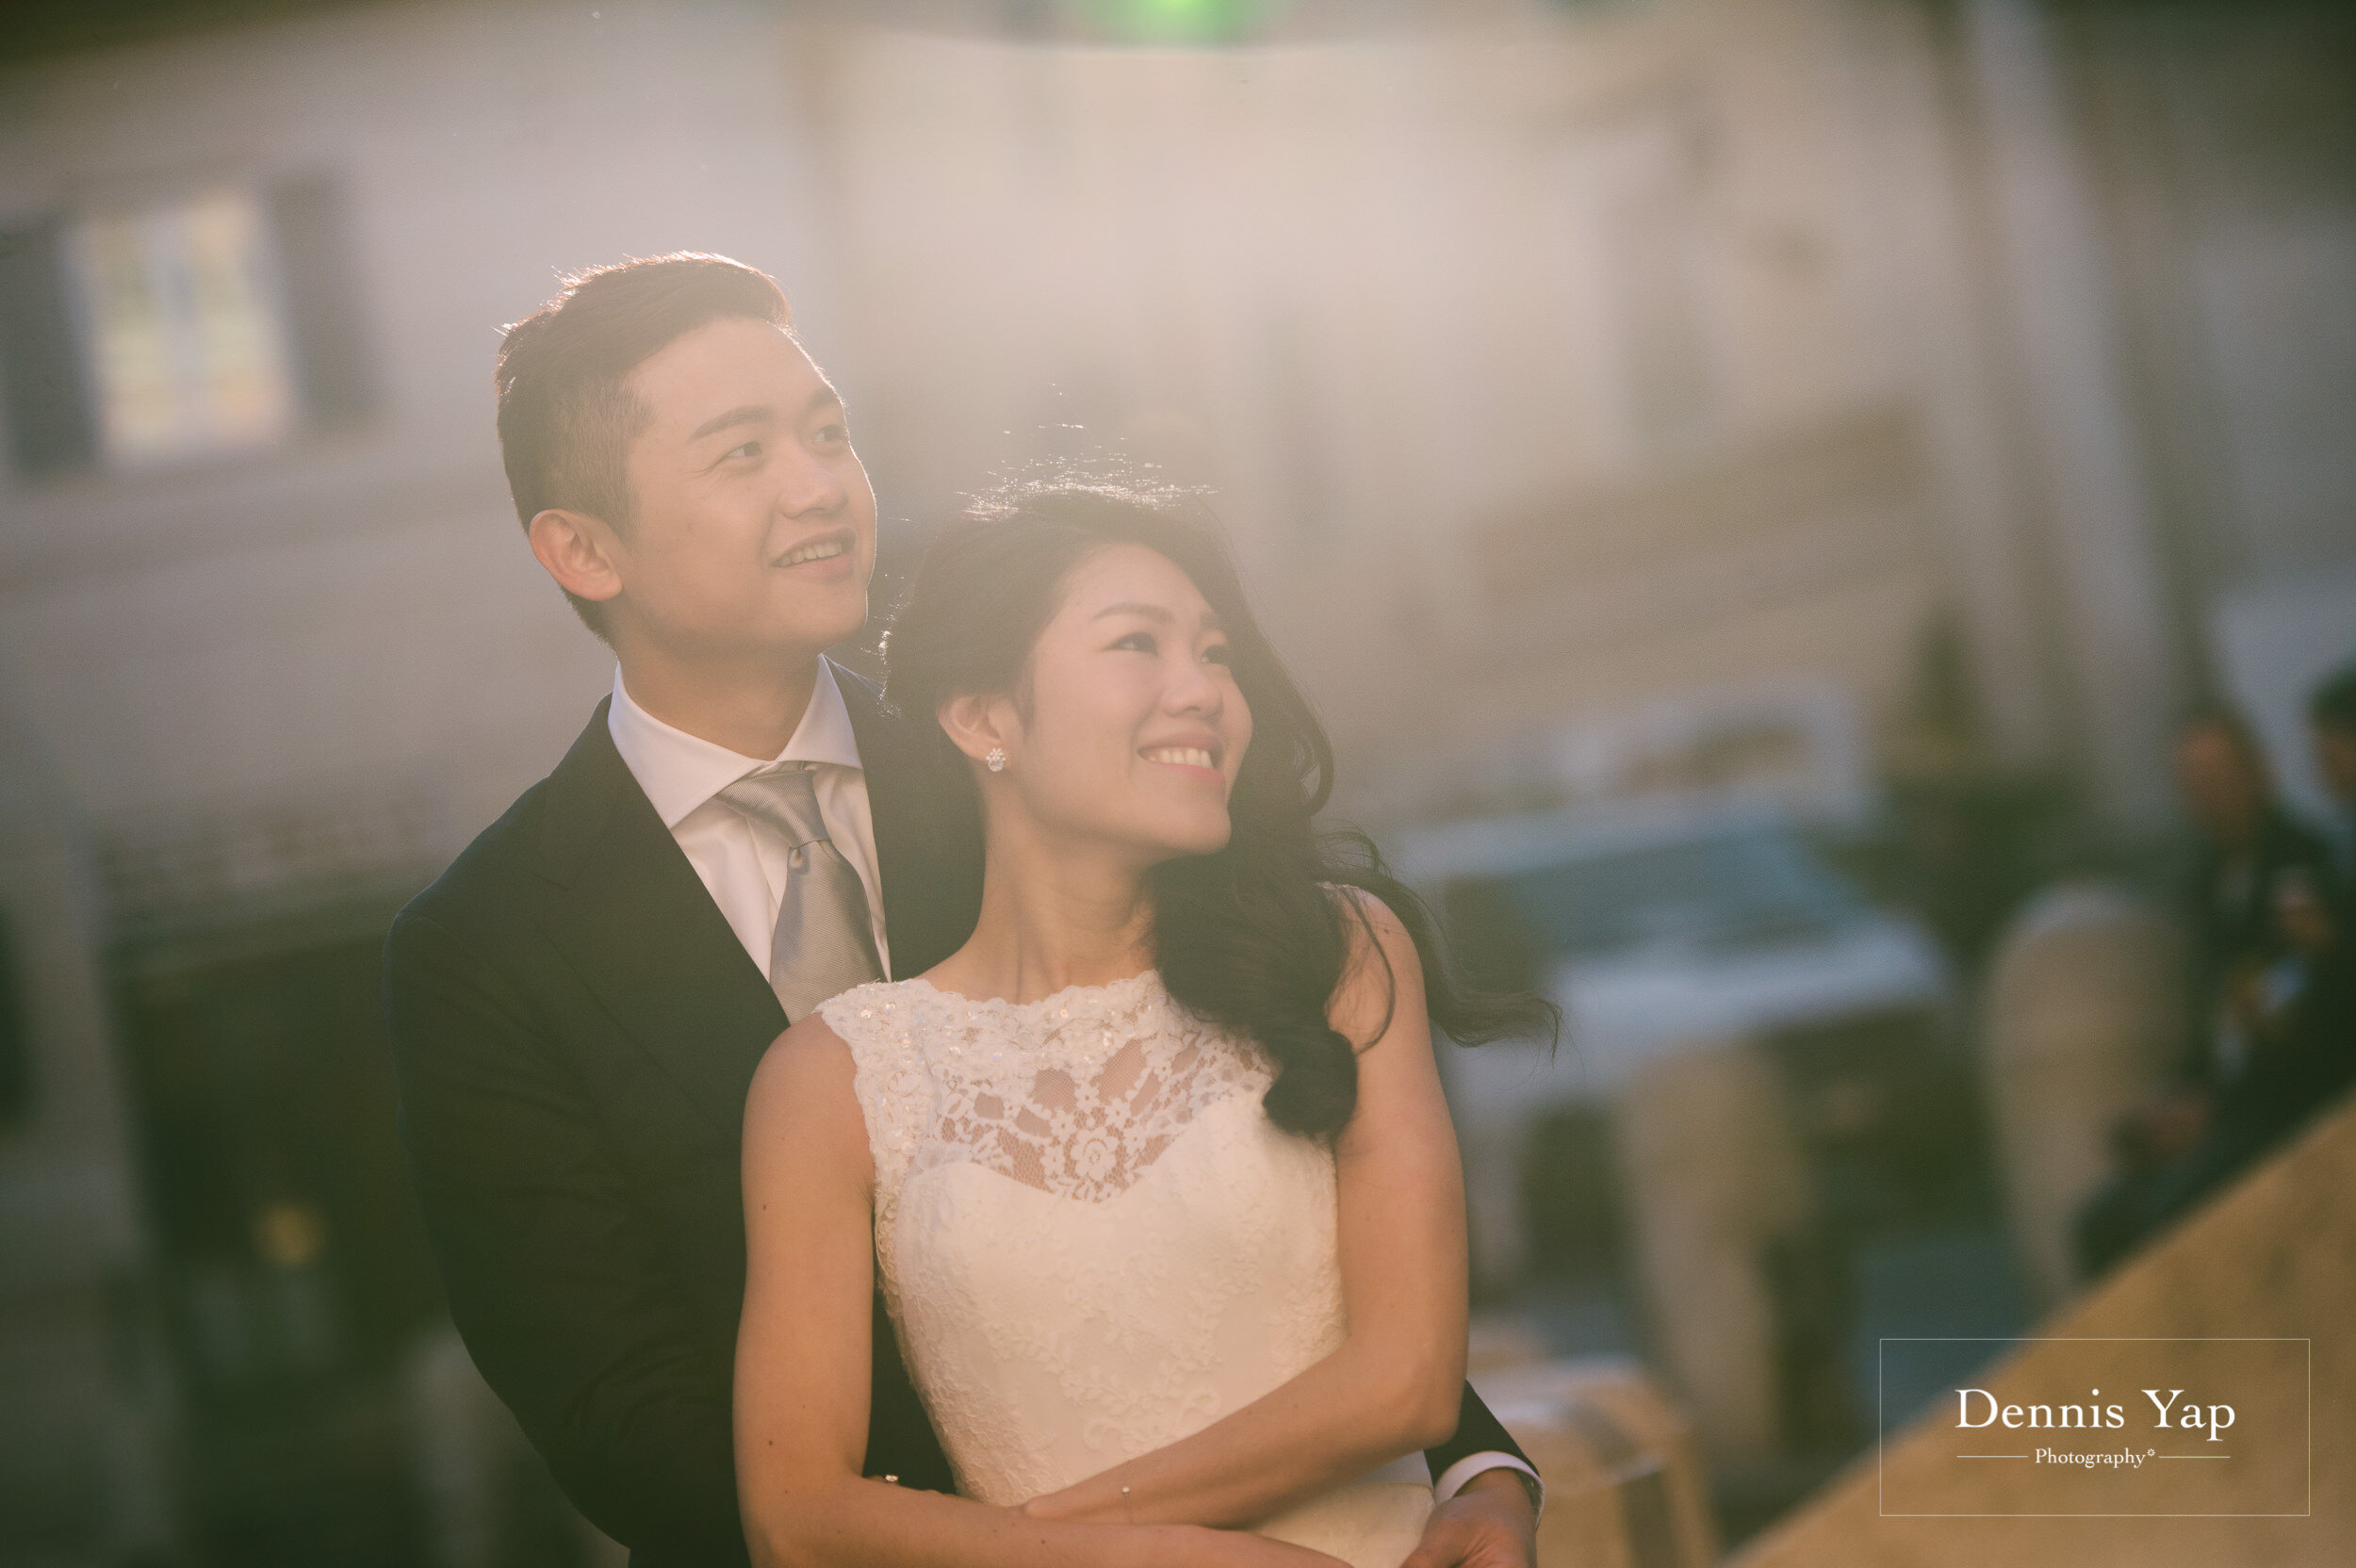 alex chloe pre wedding rome italy dennis yap photography overseas portrait classic beloved-113.jpg